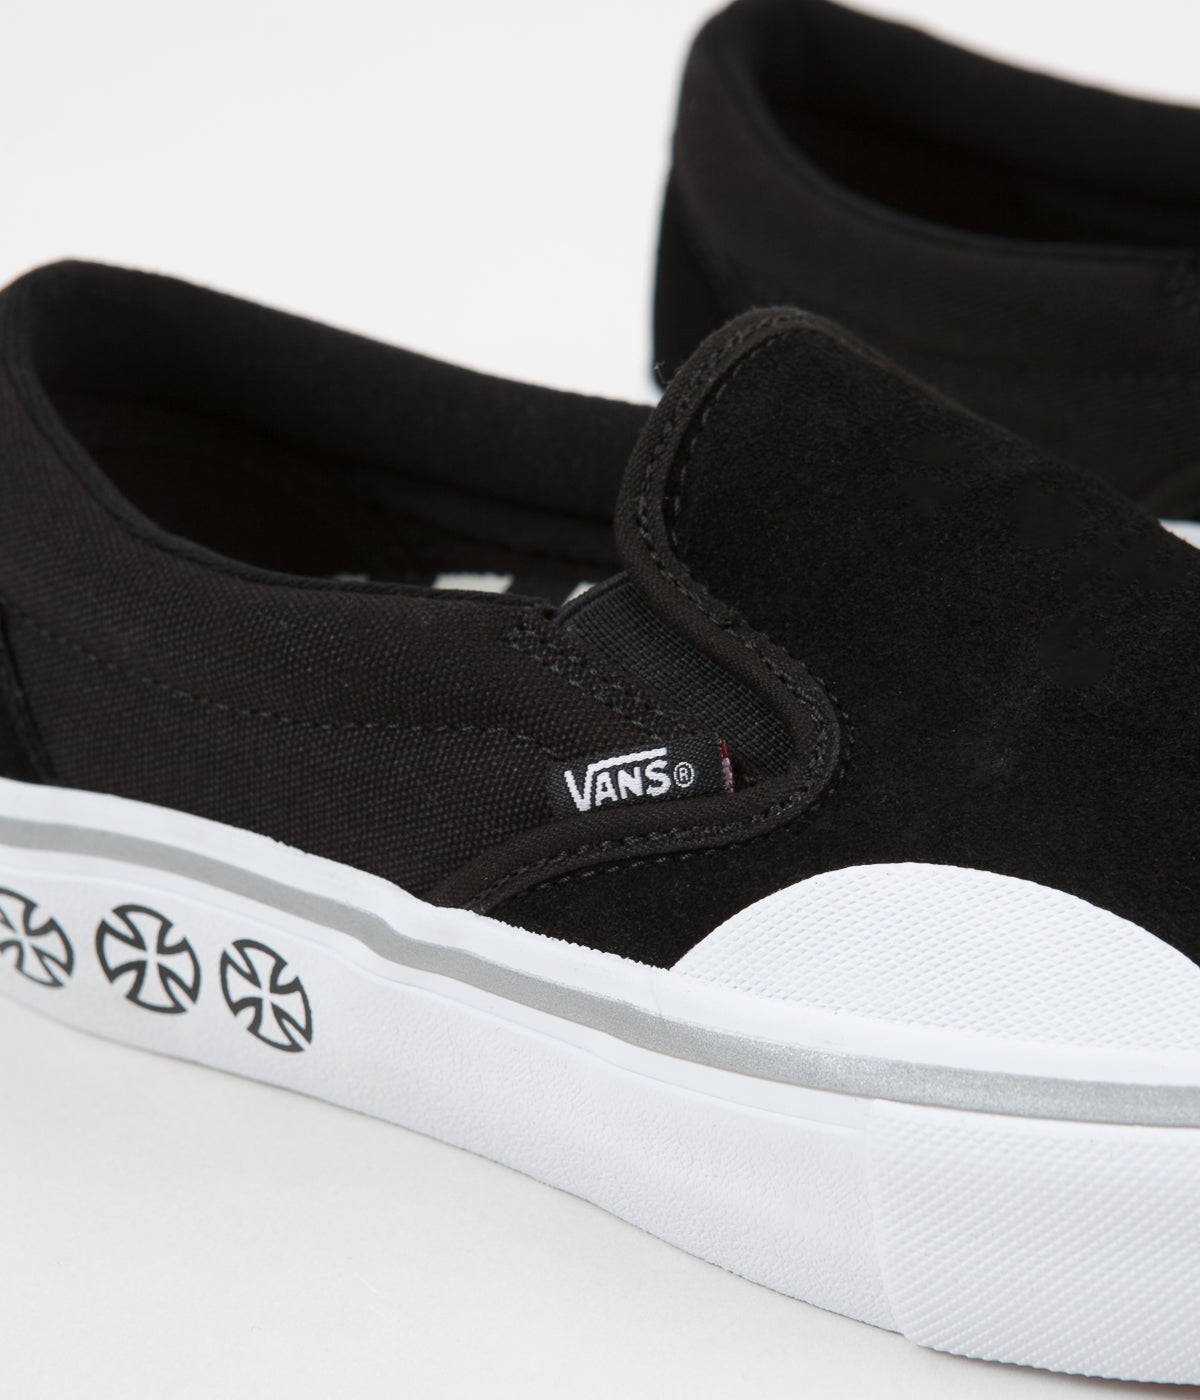 ... Vans x Independent Slip On Pro Shoes - Black   White ... 7d6e7c3ec